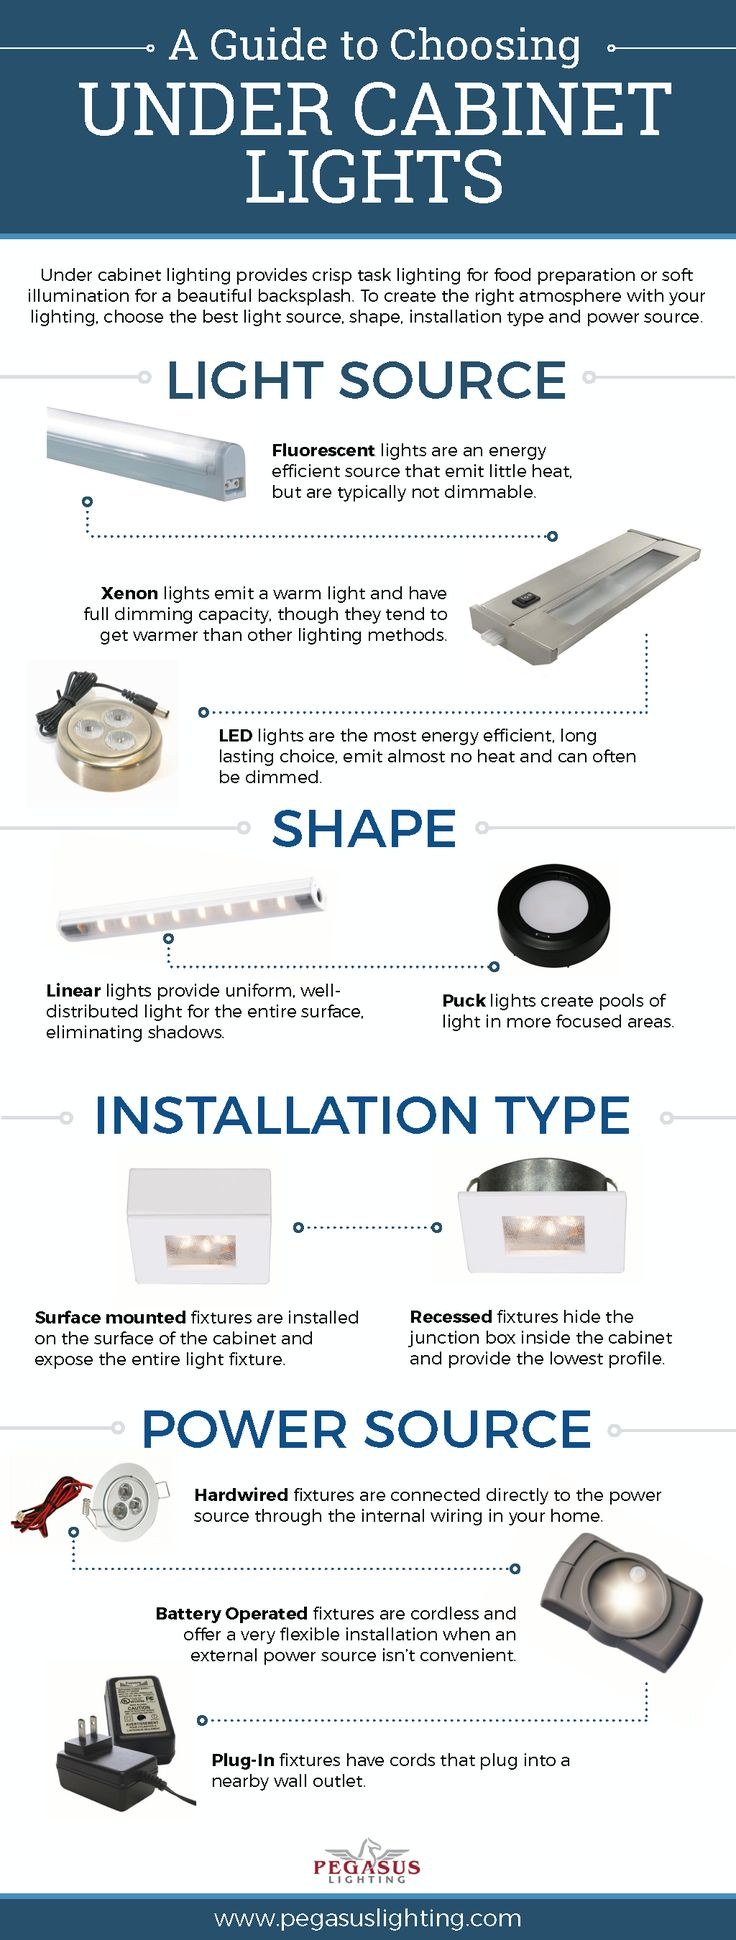 A Guide to Choosing Under Cabinet Lighting Infographic